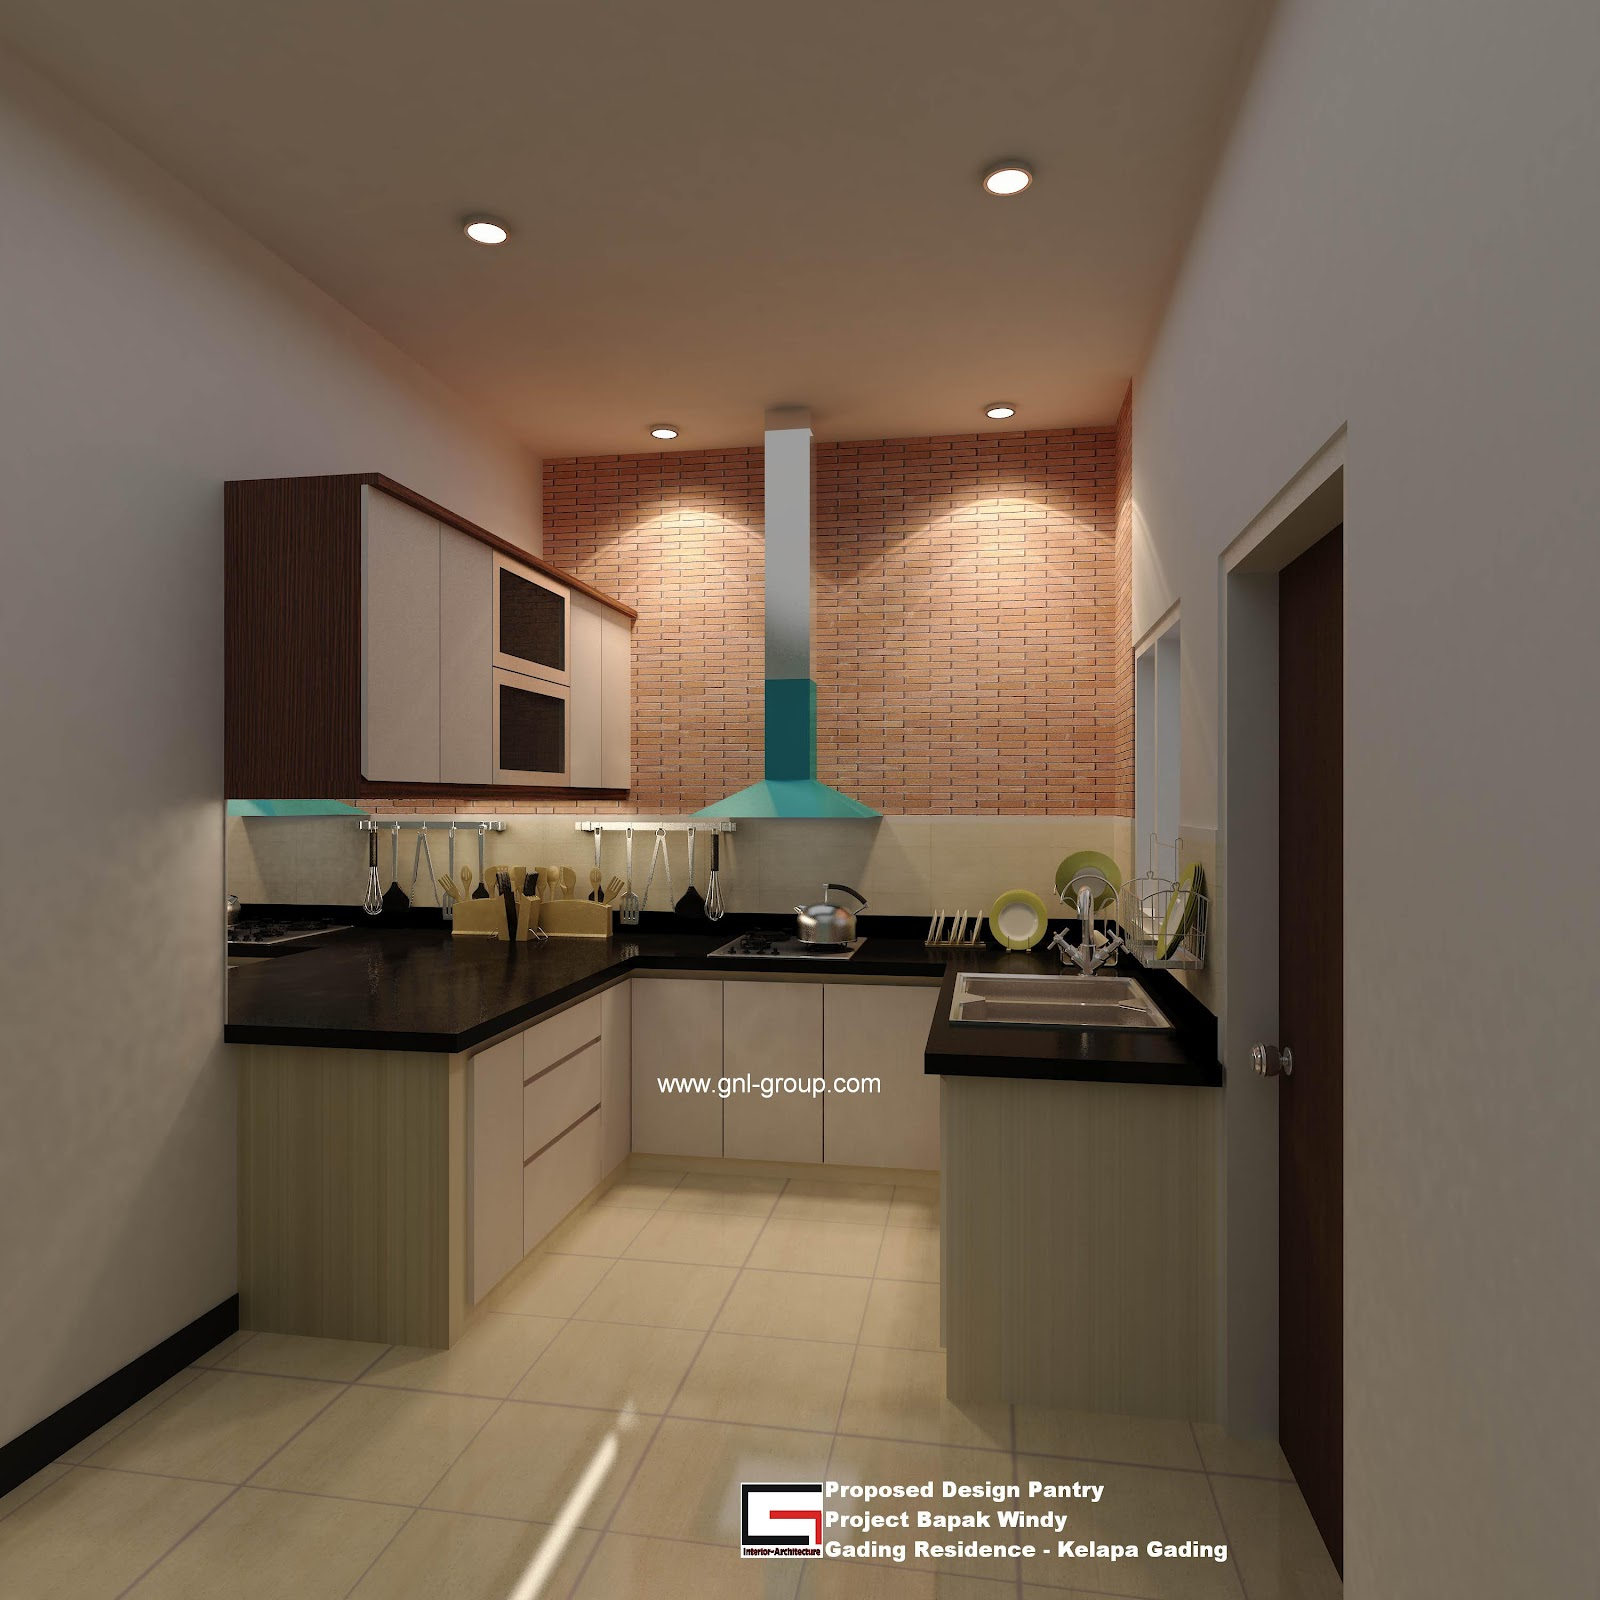 https://res.cloudinary.com/daydapk4h/image/upload/v1516184158/kitchen-set-minimalis-jakarta_esotg3.jpg